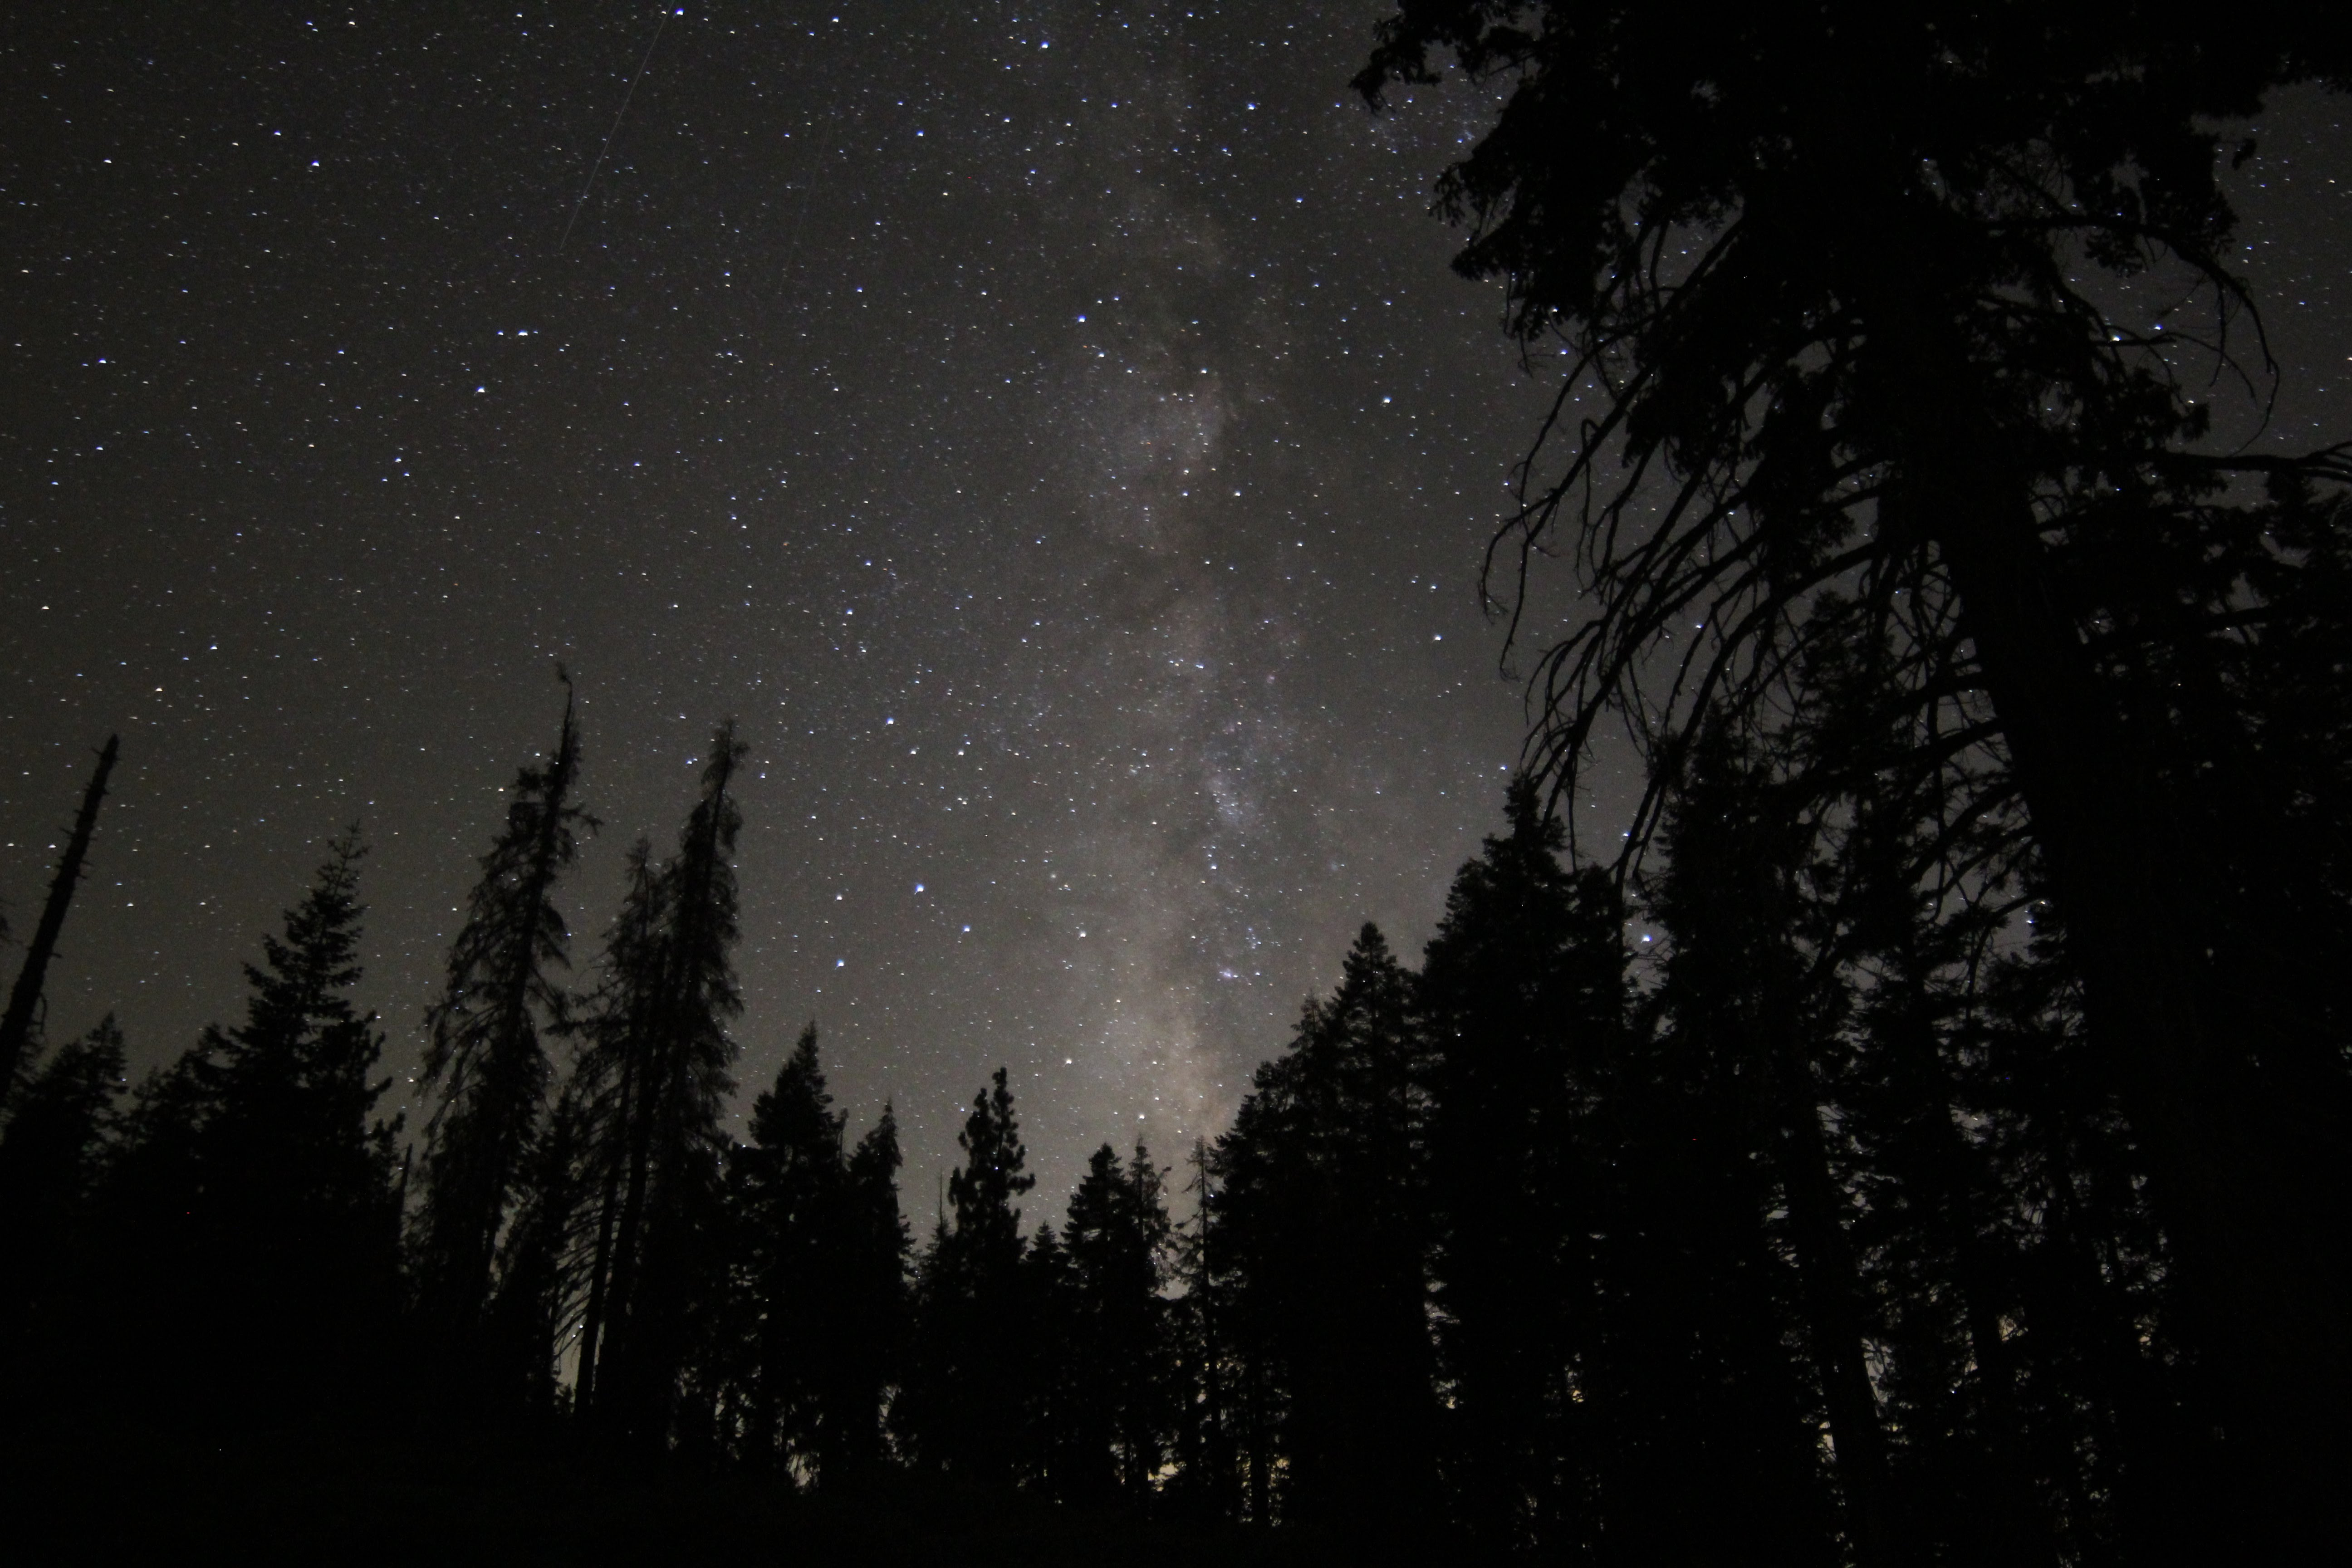 Milky Way in Kings Canyon